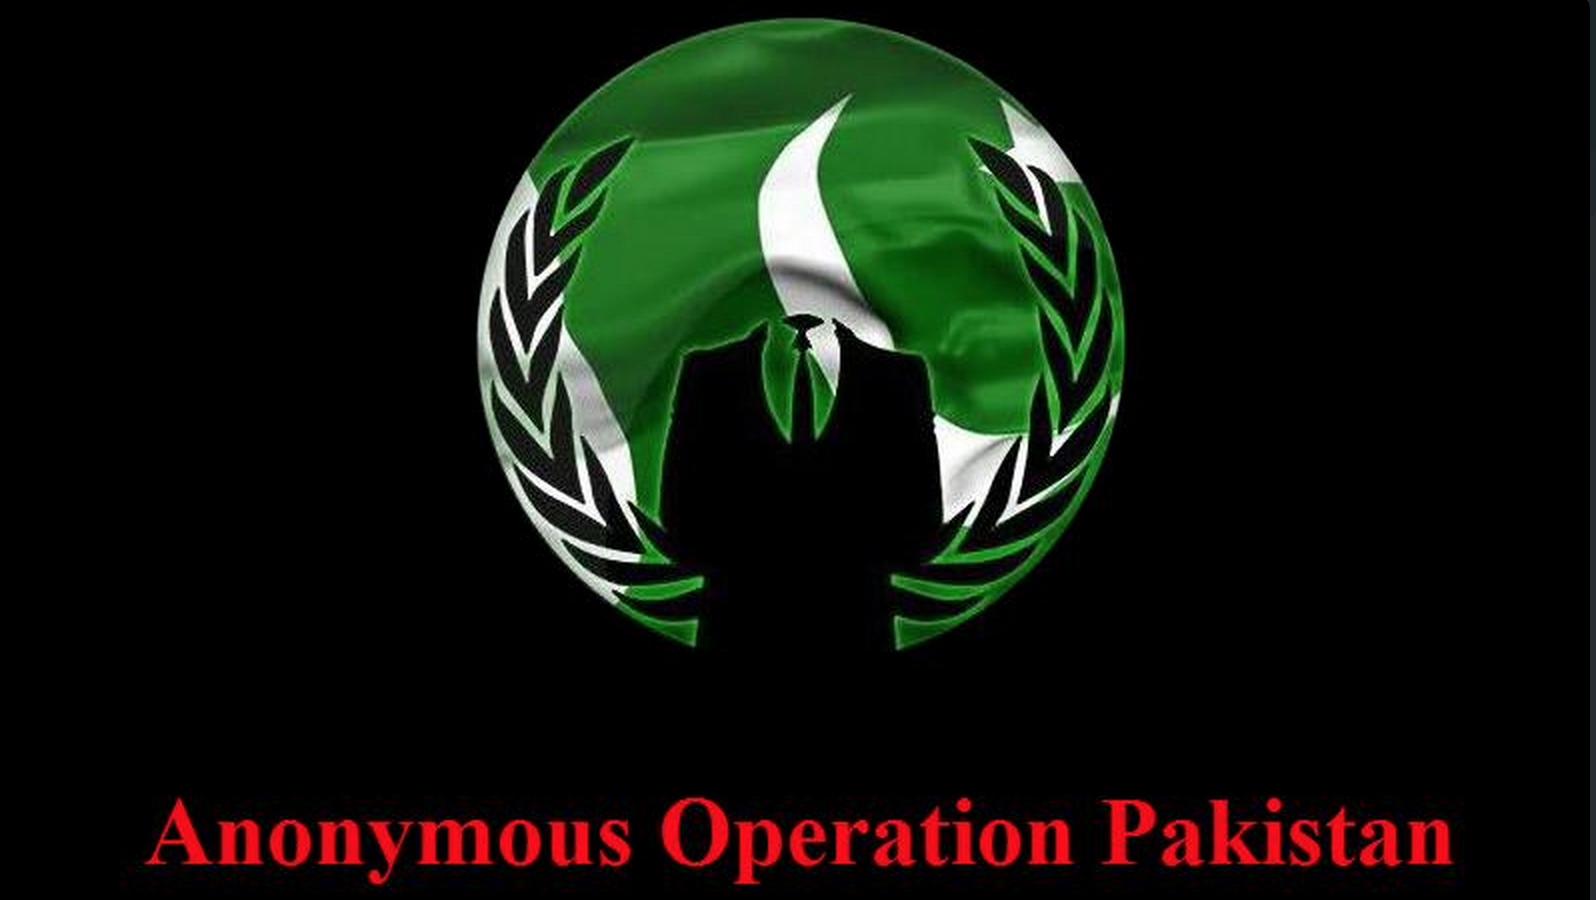 Anonymous OpPakistan Operation Pakistan